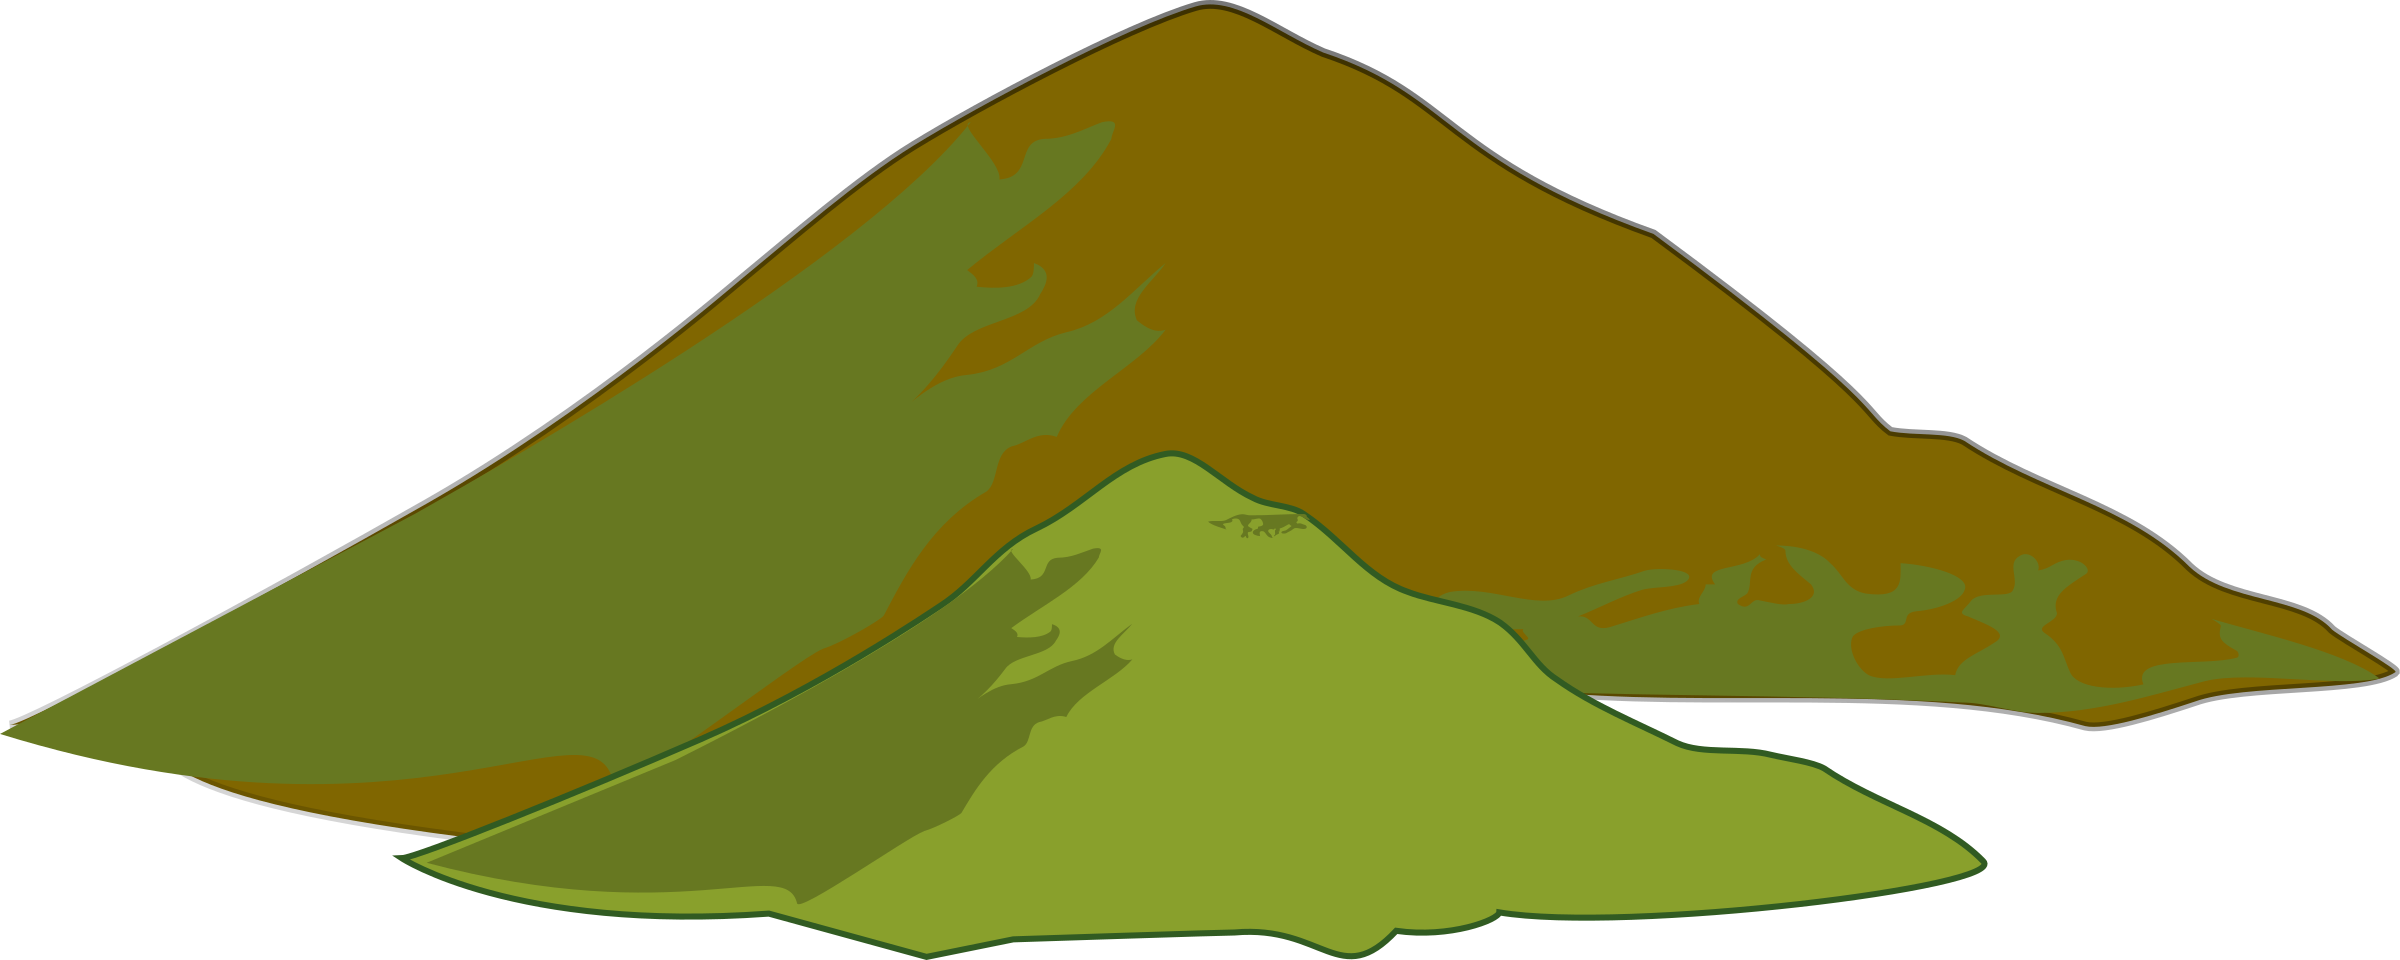 Mountains clipart free clip art images